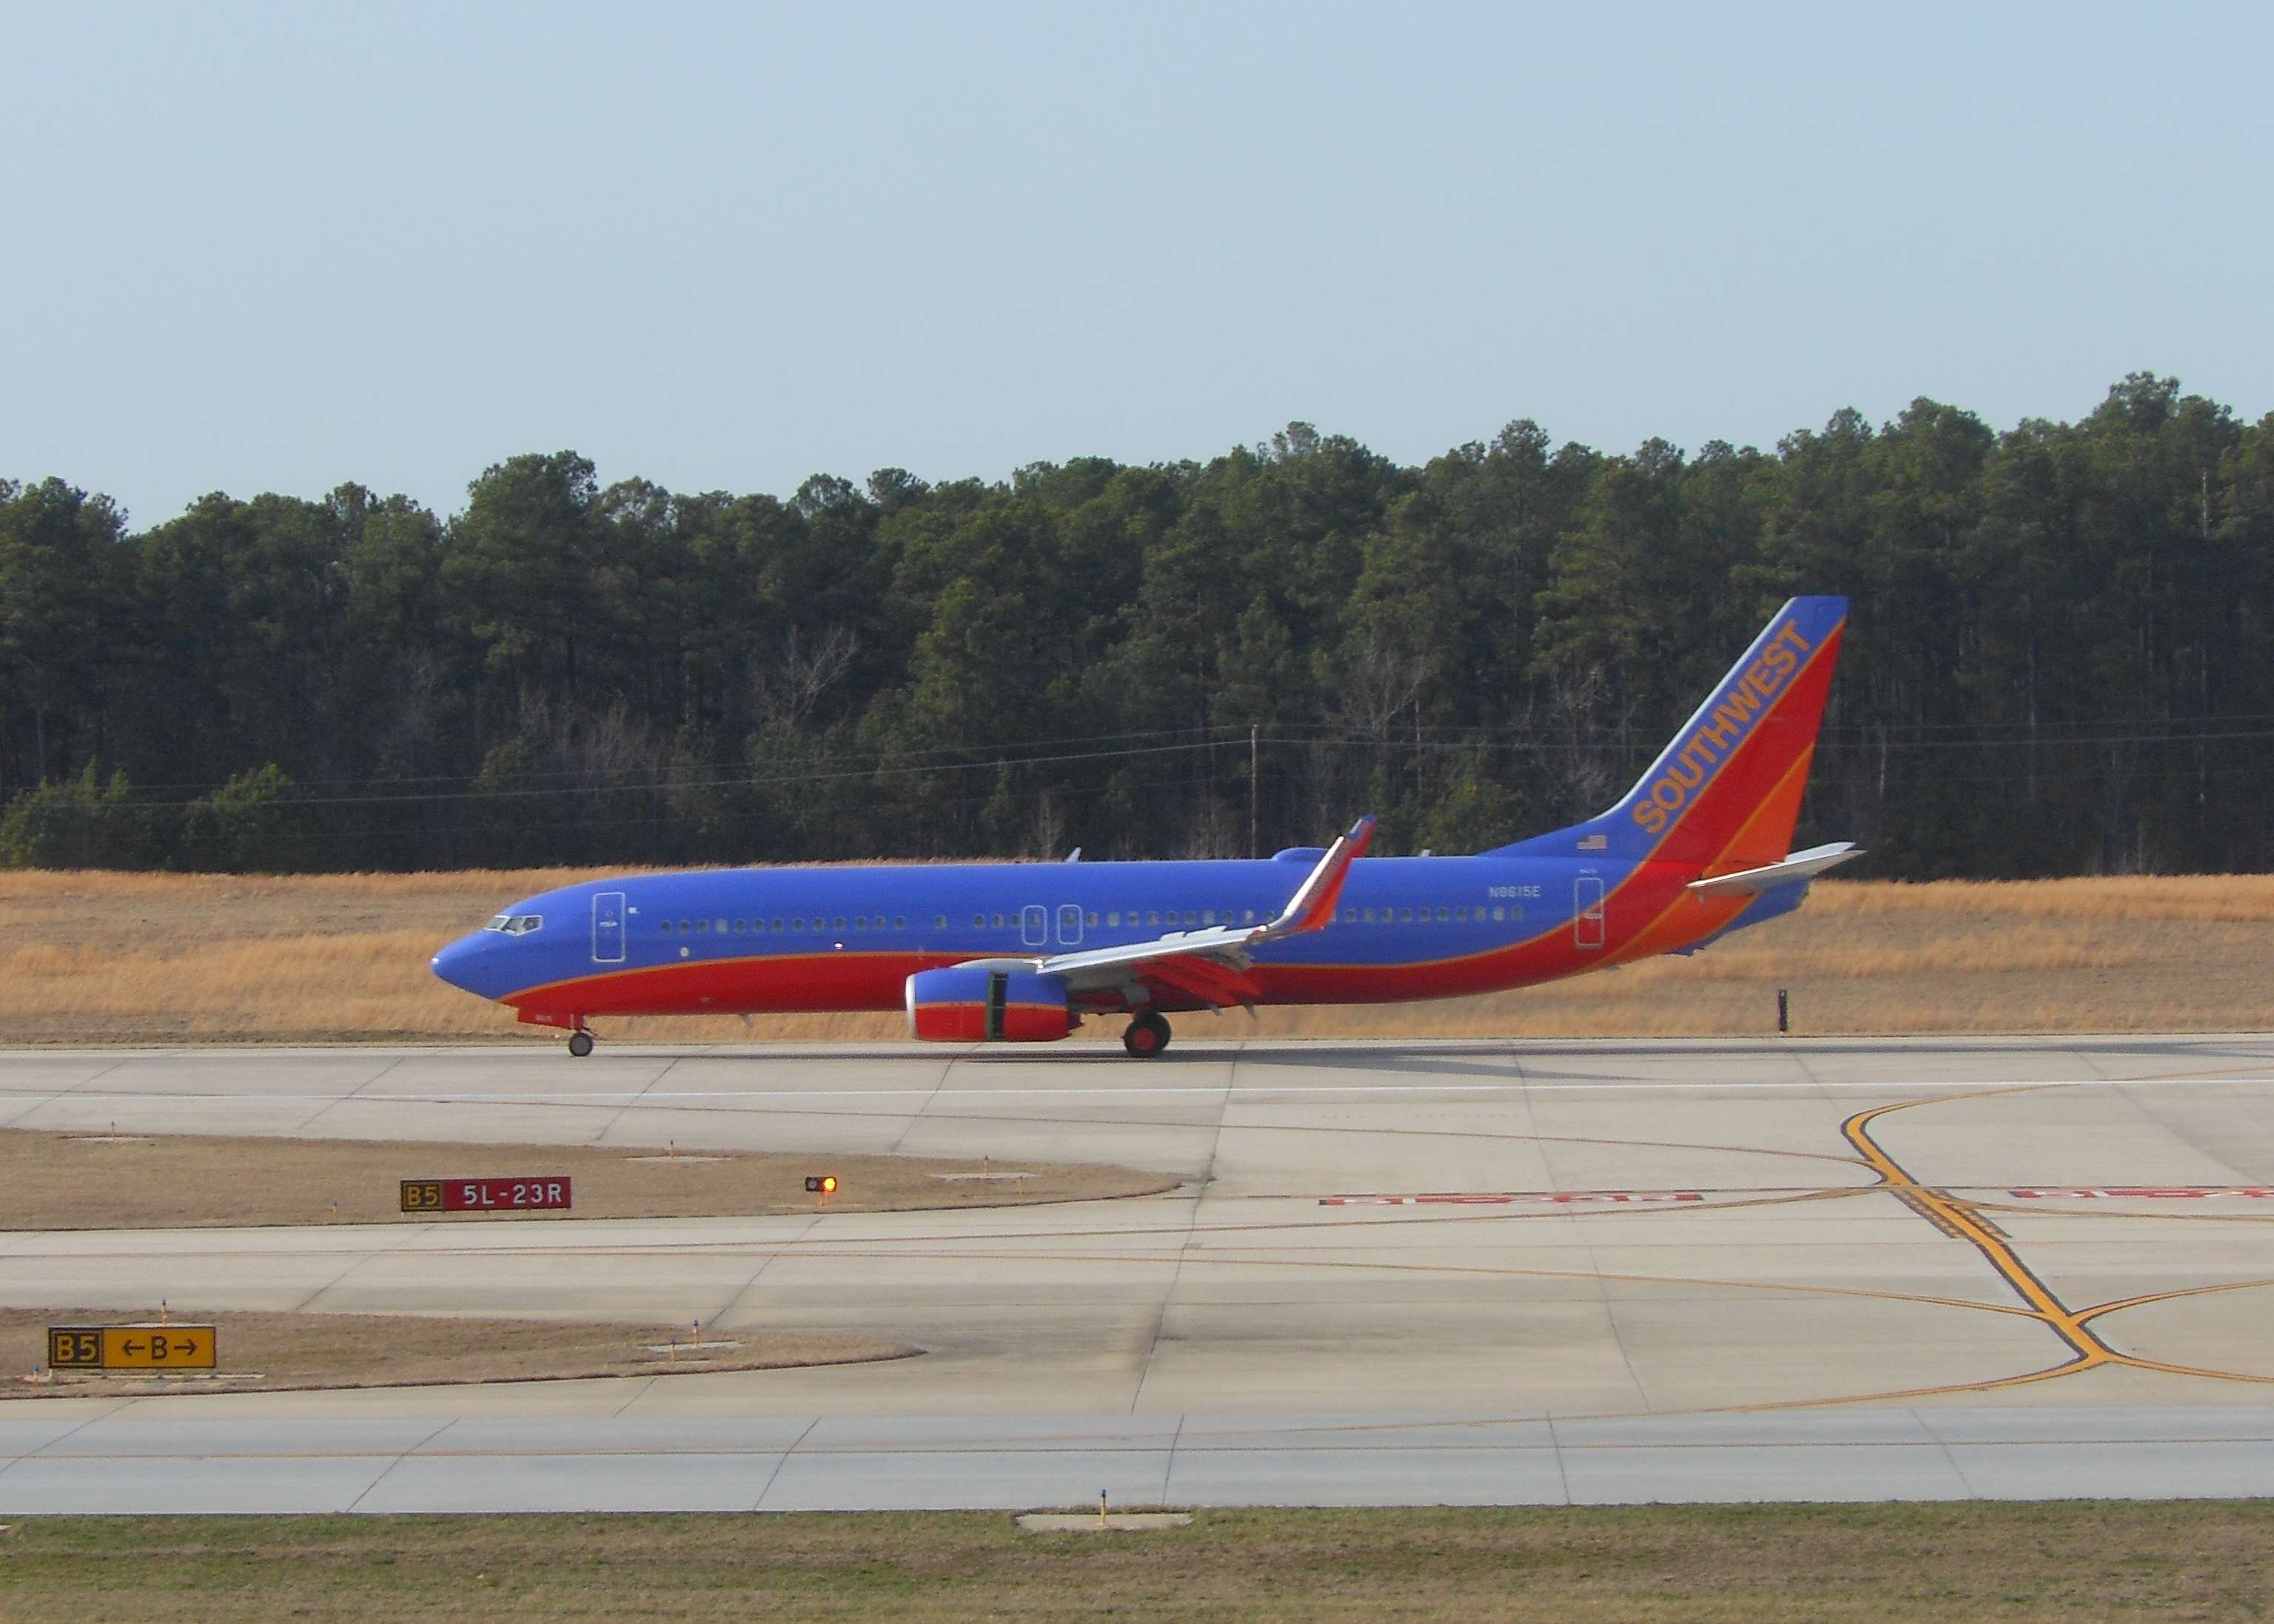 Southwest_Airlines_Landing_at_RDU_Airport